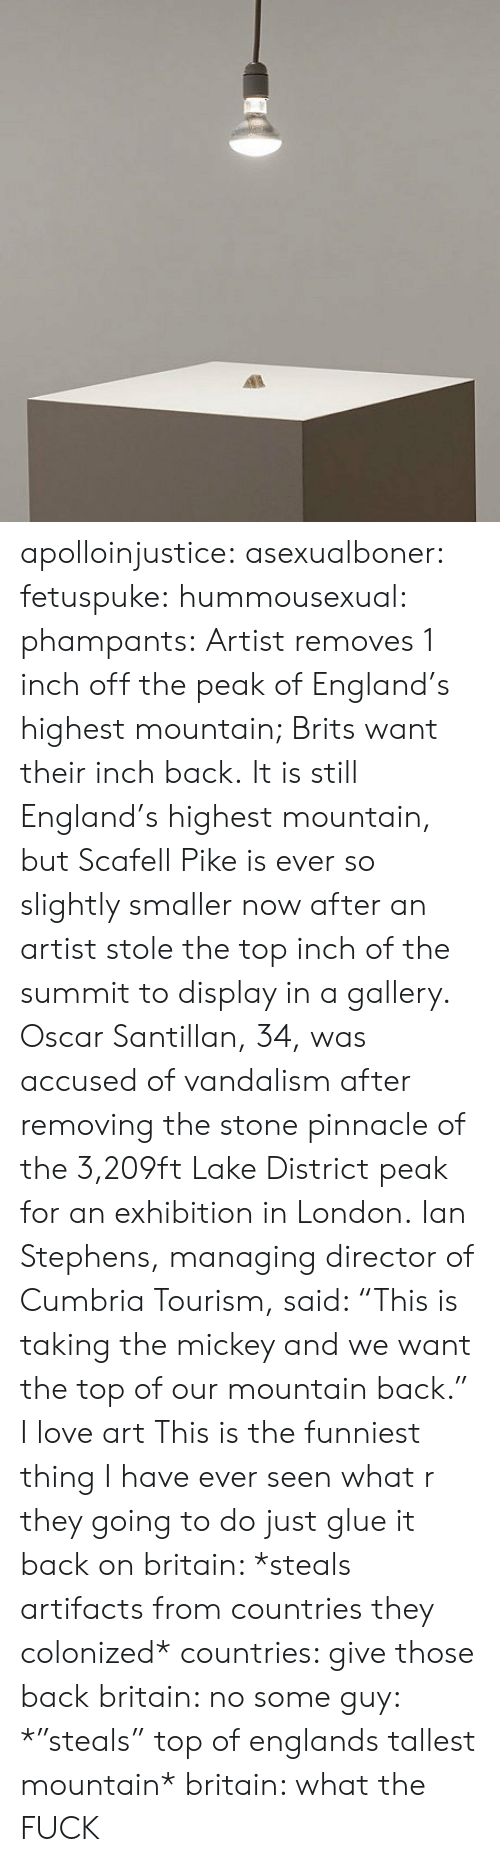 "brits: apolloinjustice:  asexualboner:  fetuspuke:   hummousexual:   phampants:   Artist removes 1 inch off the peak of England's highest mountain; Brits want their inch back. It is still England's highest mountain, but Scafell Pike is ever so slightly smaller now after an artist stole the top inch of the summit to display in a gallery. Oscar Santillan, 34, was accused of vandalism after removing the stone pinnacle of the 3,209ft Lake District peak for an exhibition in London. Ian Stephens, managing director of Cumbria Tourism, said: ""This is taking the mickey and we want the top of our mountain back.""   I love art   This is the funniest thing I have ever seen   what r they going to do just glue it back on   britain: *steals artifacts from countries they colonized* countries: give those back britain: no some guy: *""steals"" top of englands tallest mountain* britain: what the FUCK"